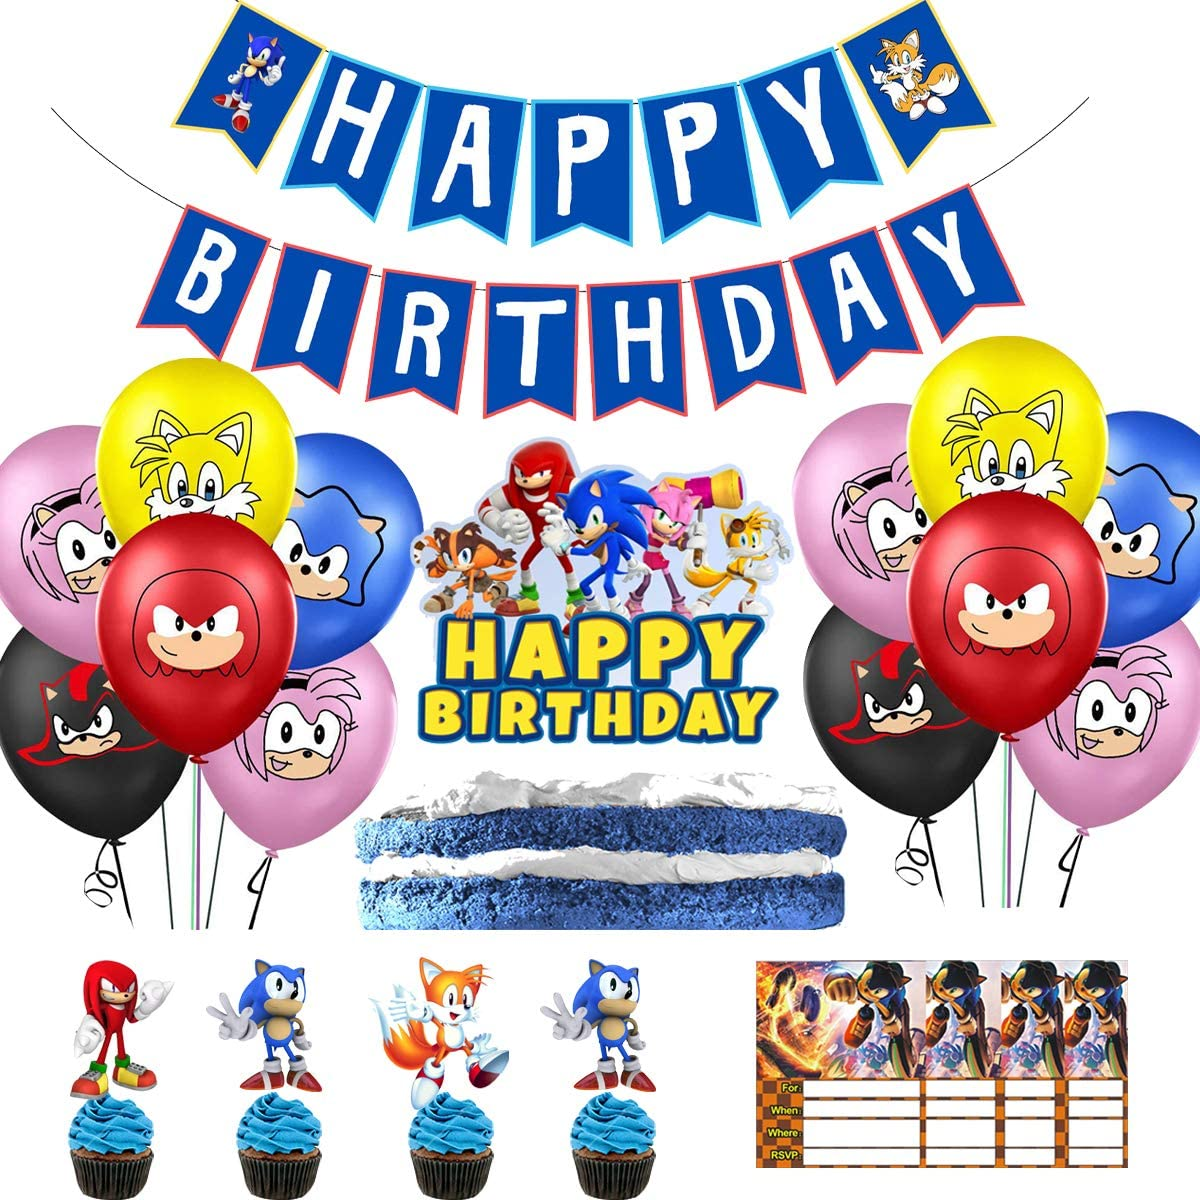 Amazon Com Cike Birthday Party Supplies Including Sonic The Hedgehog Banner Cake Hat 20 Cake Hat 20 Balloons 10 Invitation Cards Blue Large Clothing